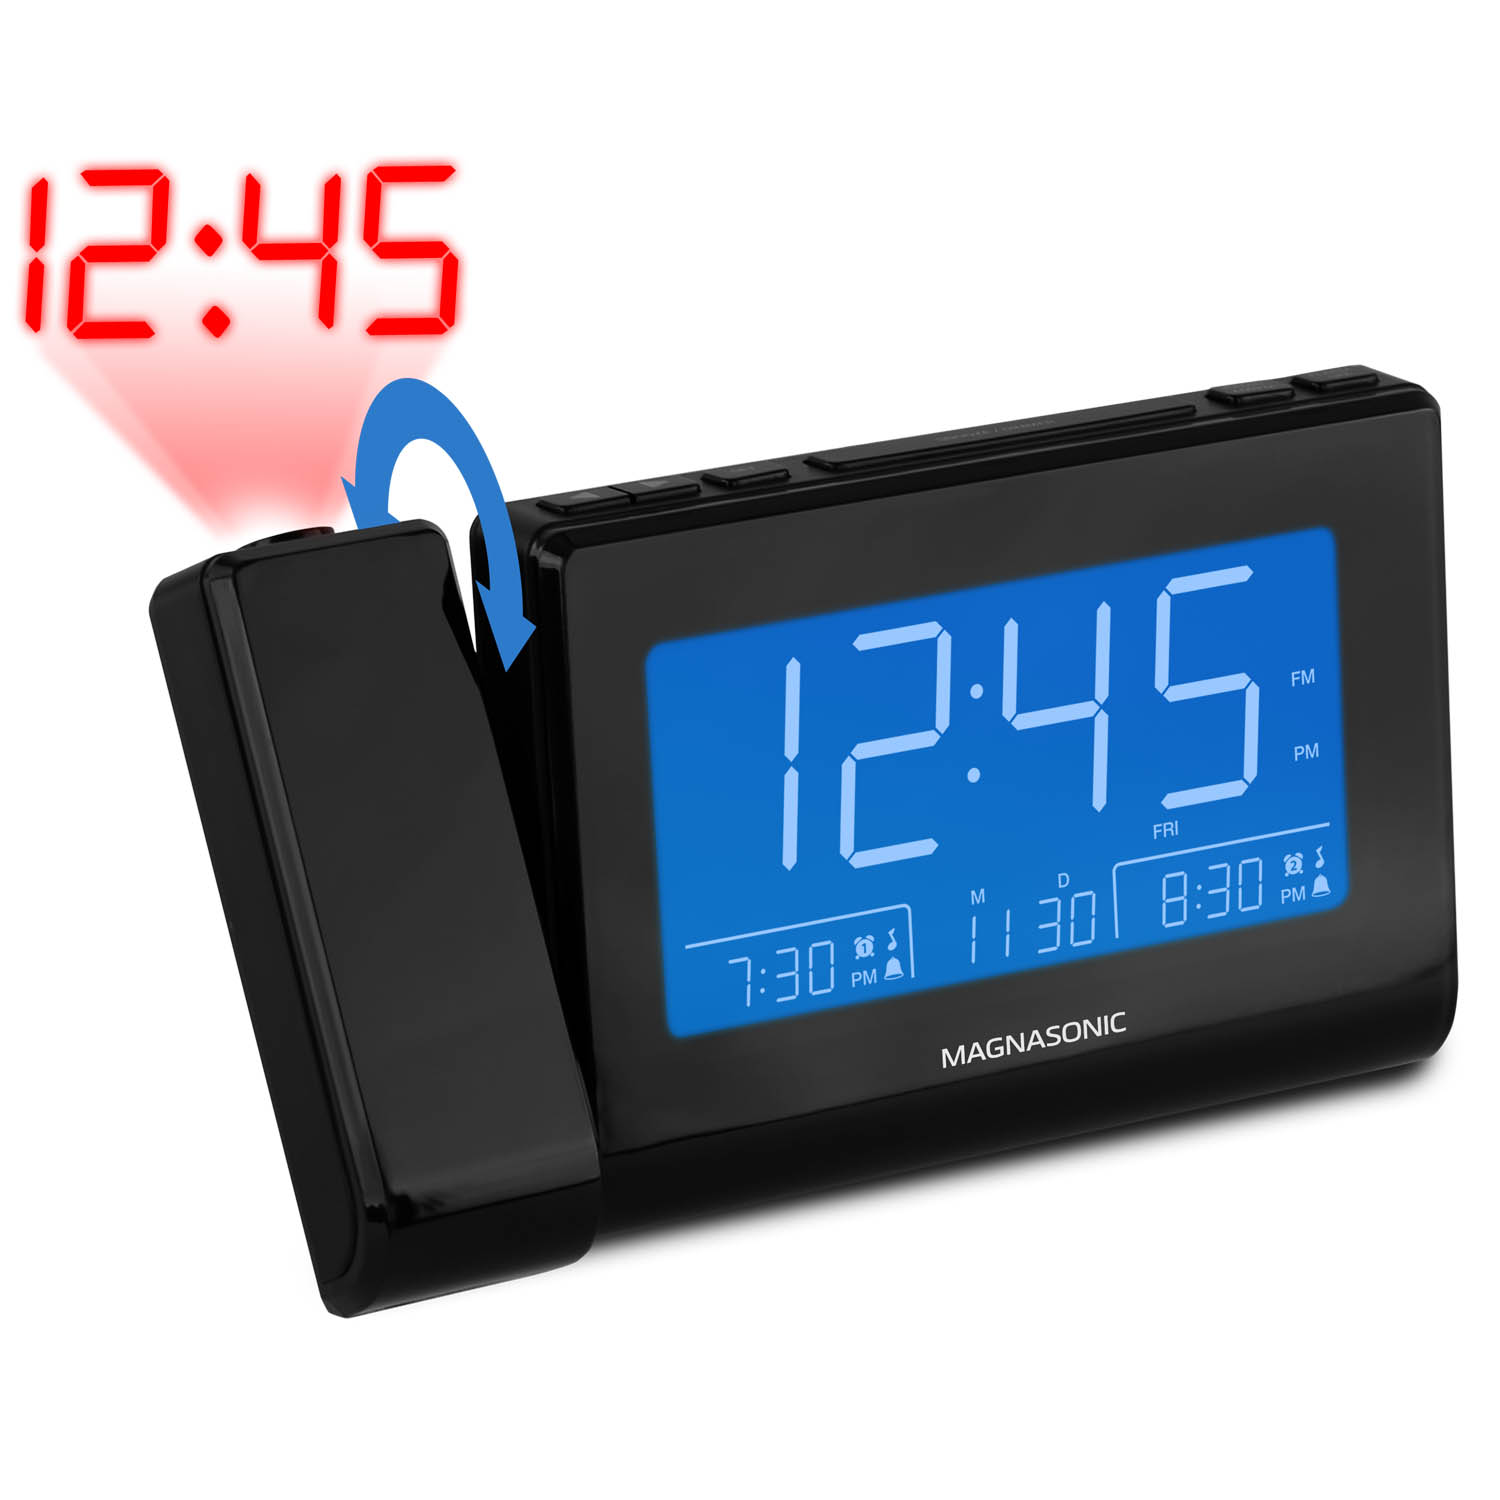 """Magnasonic Alarm Clock Radio with USB Charging for Smartphones & Tablets, Time Projection, Auto Dimming, Battery Backup, Auto Time Set, Large 4.8"""" LED Display, AM/FM (CR64) - 1 Year Extended Warranty - image 4 de 8"""